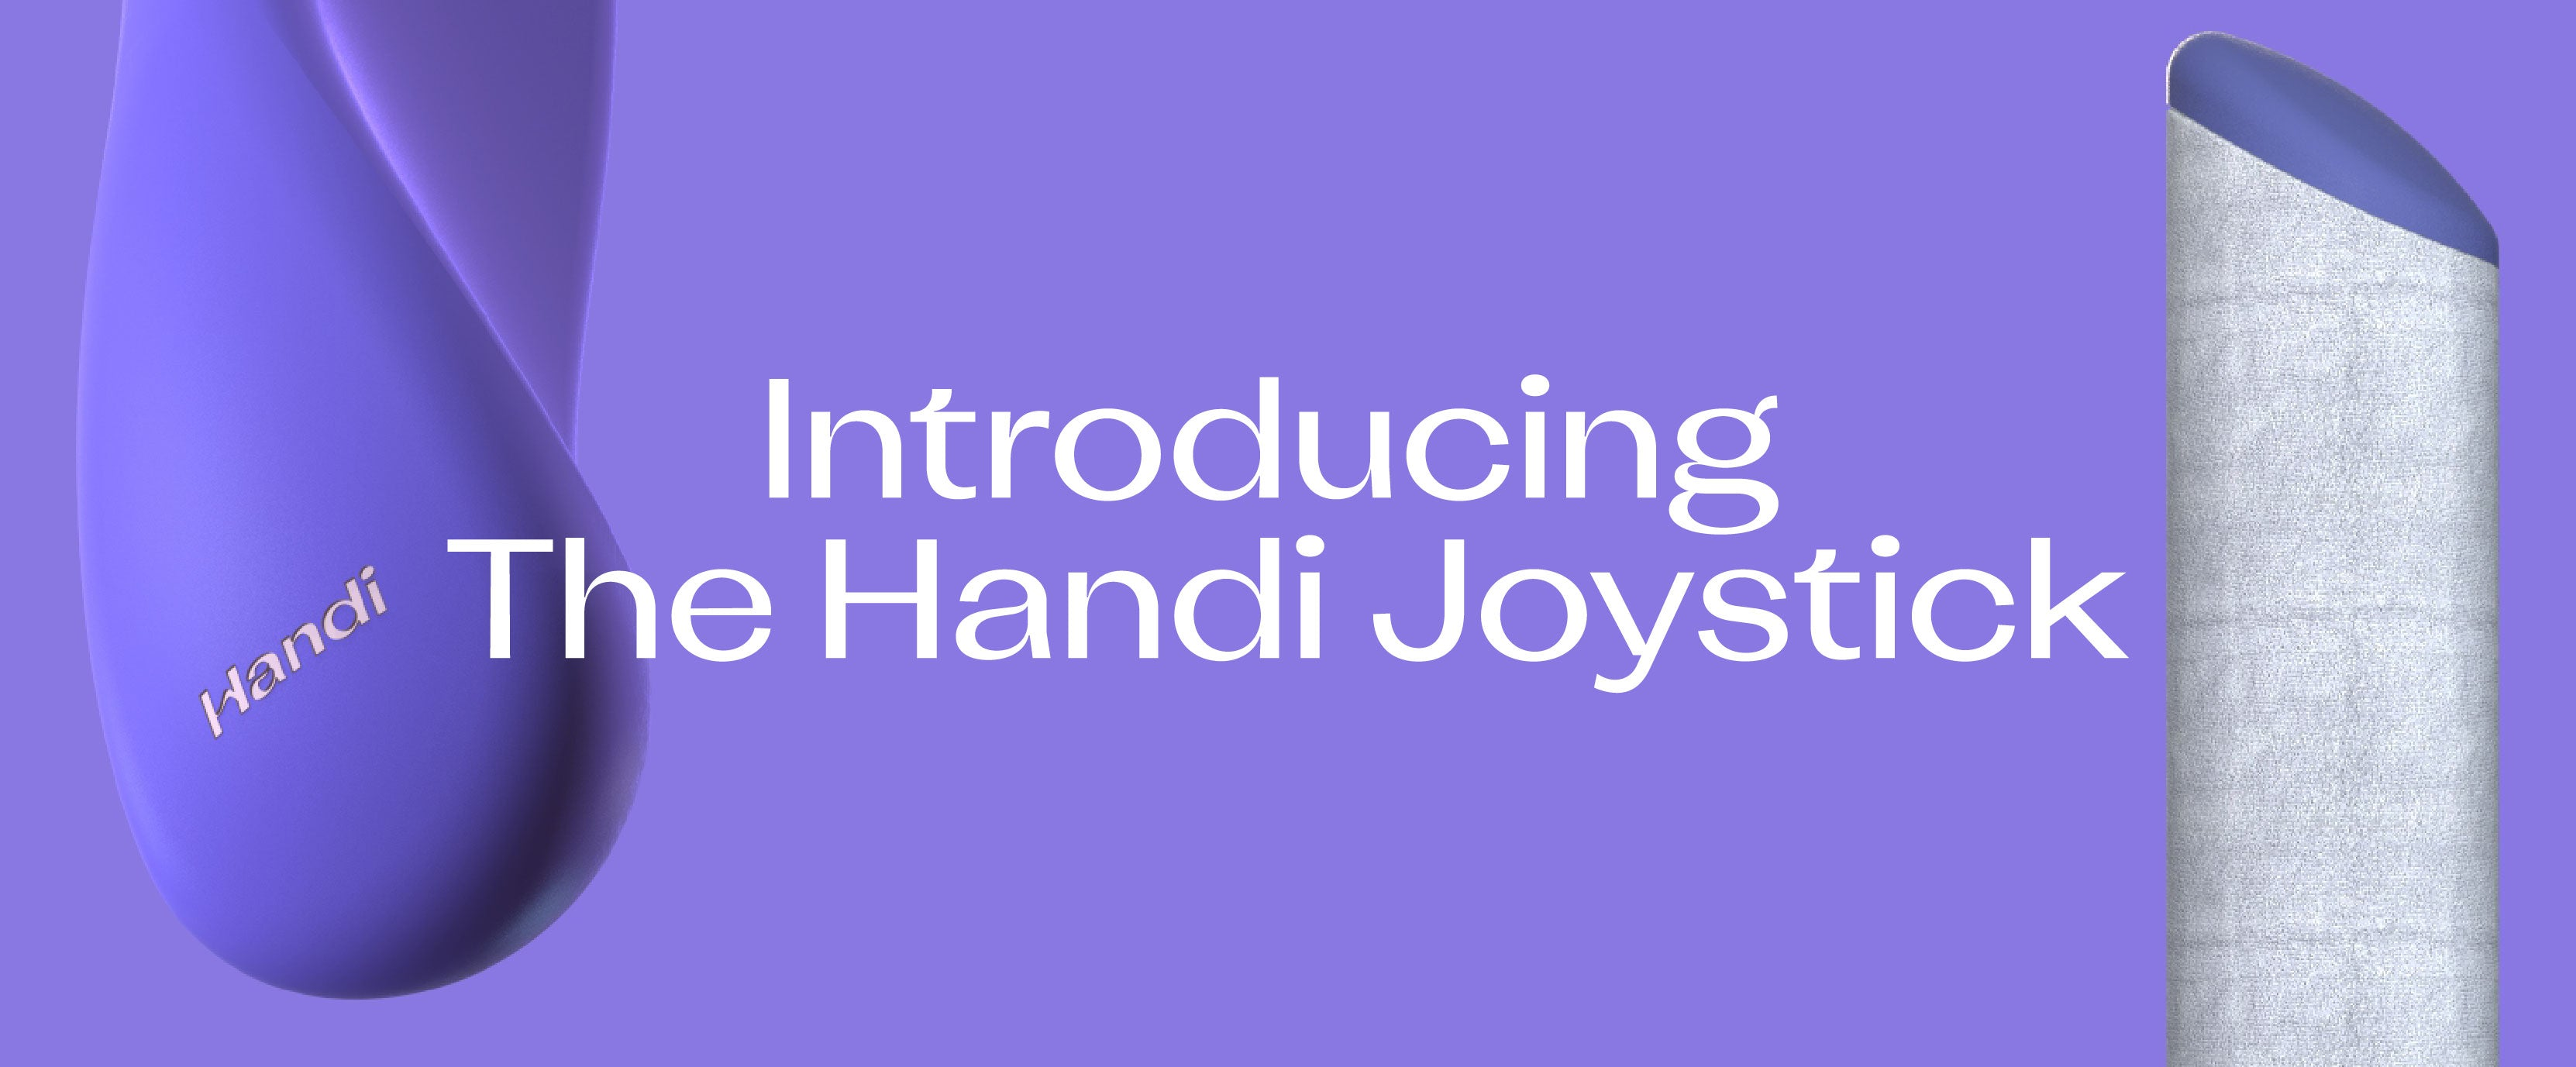 The Handi Joystick Prototype on a purple background